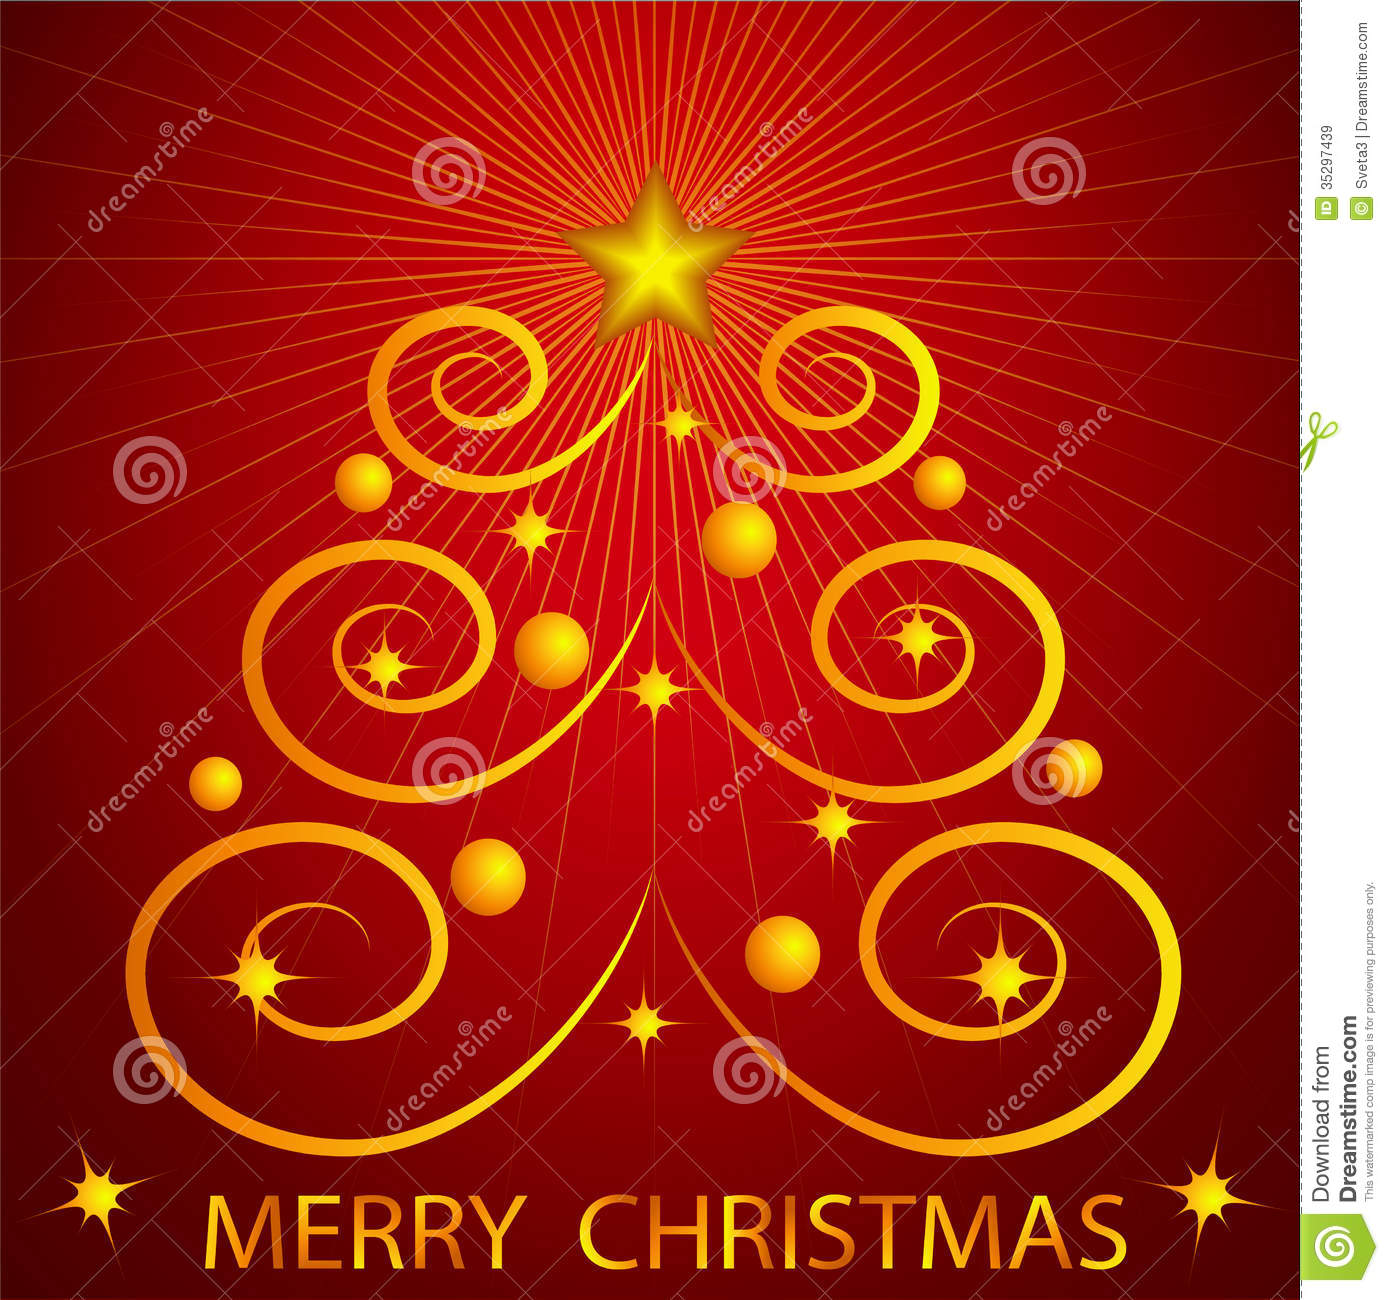 Christmas Card Stock Vector. Illustration Of Card